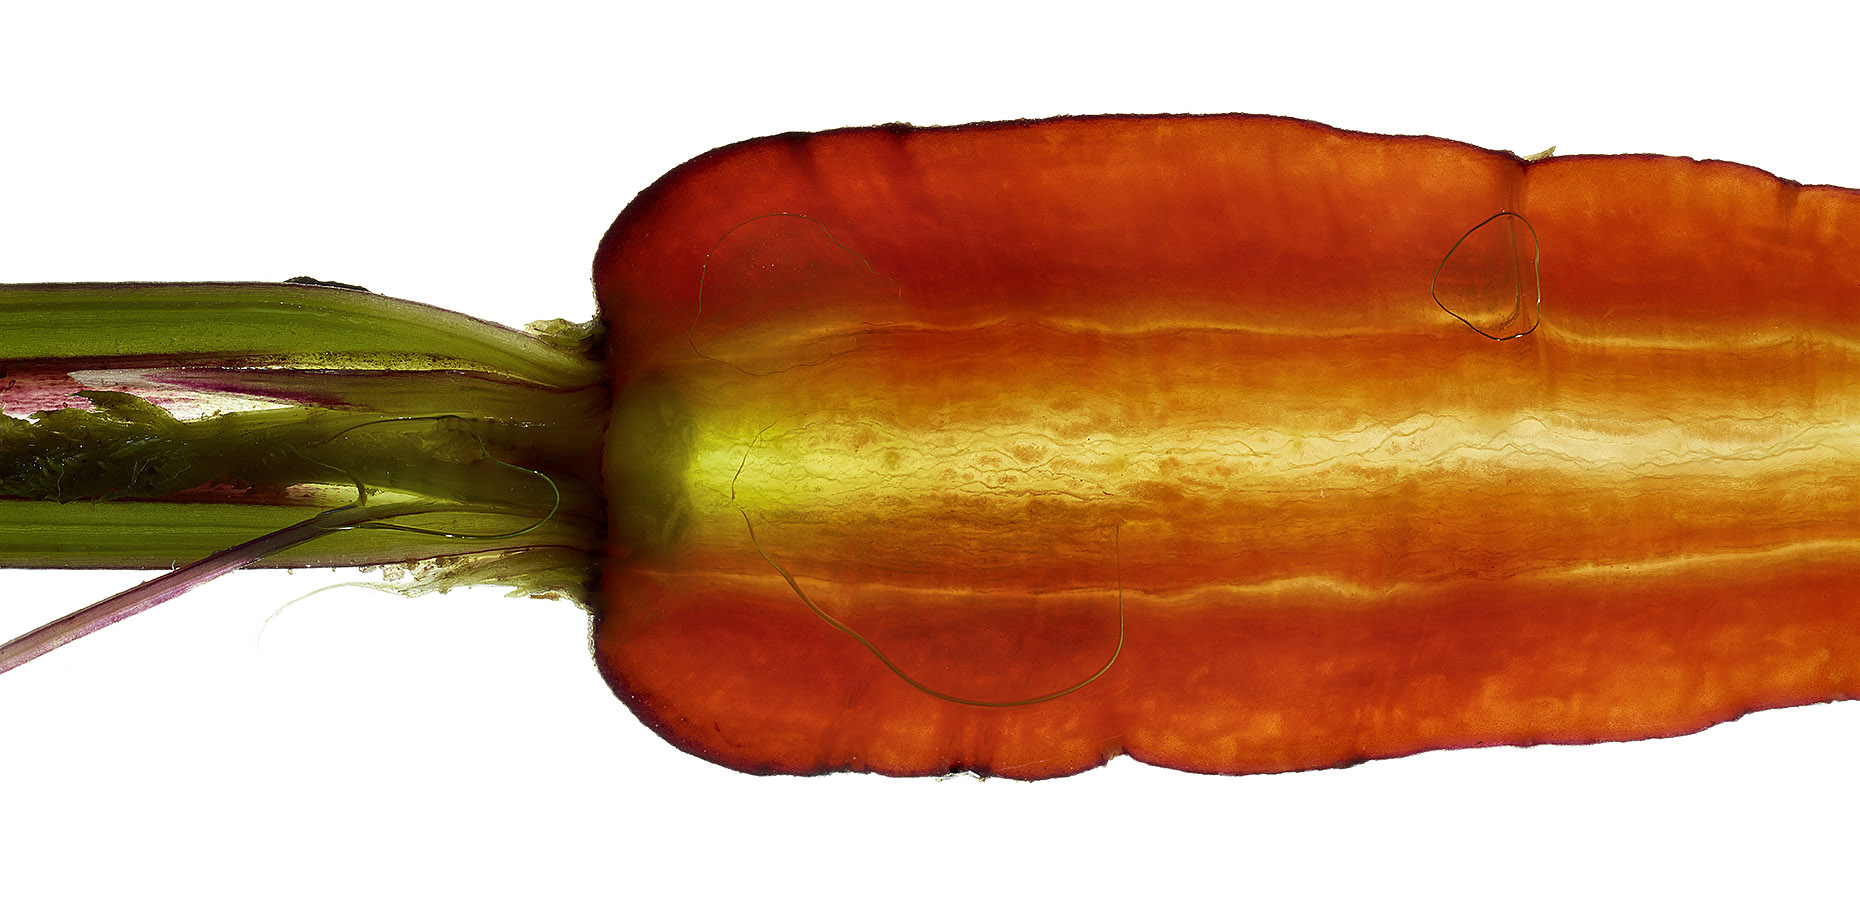 Genome_Carrot2_76193